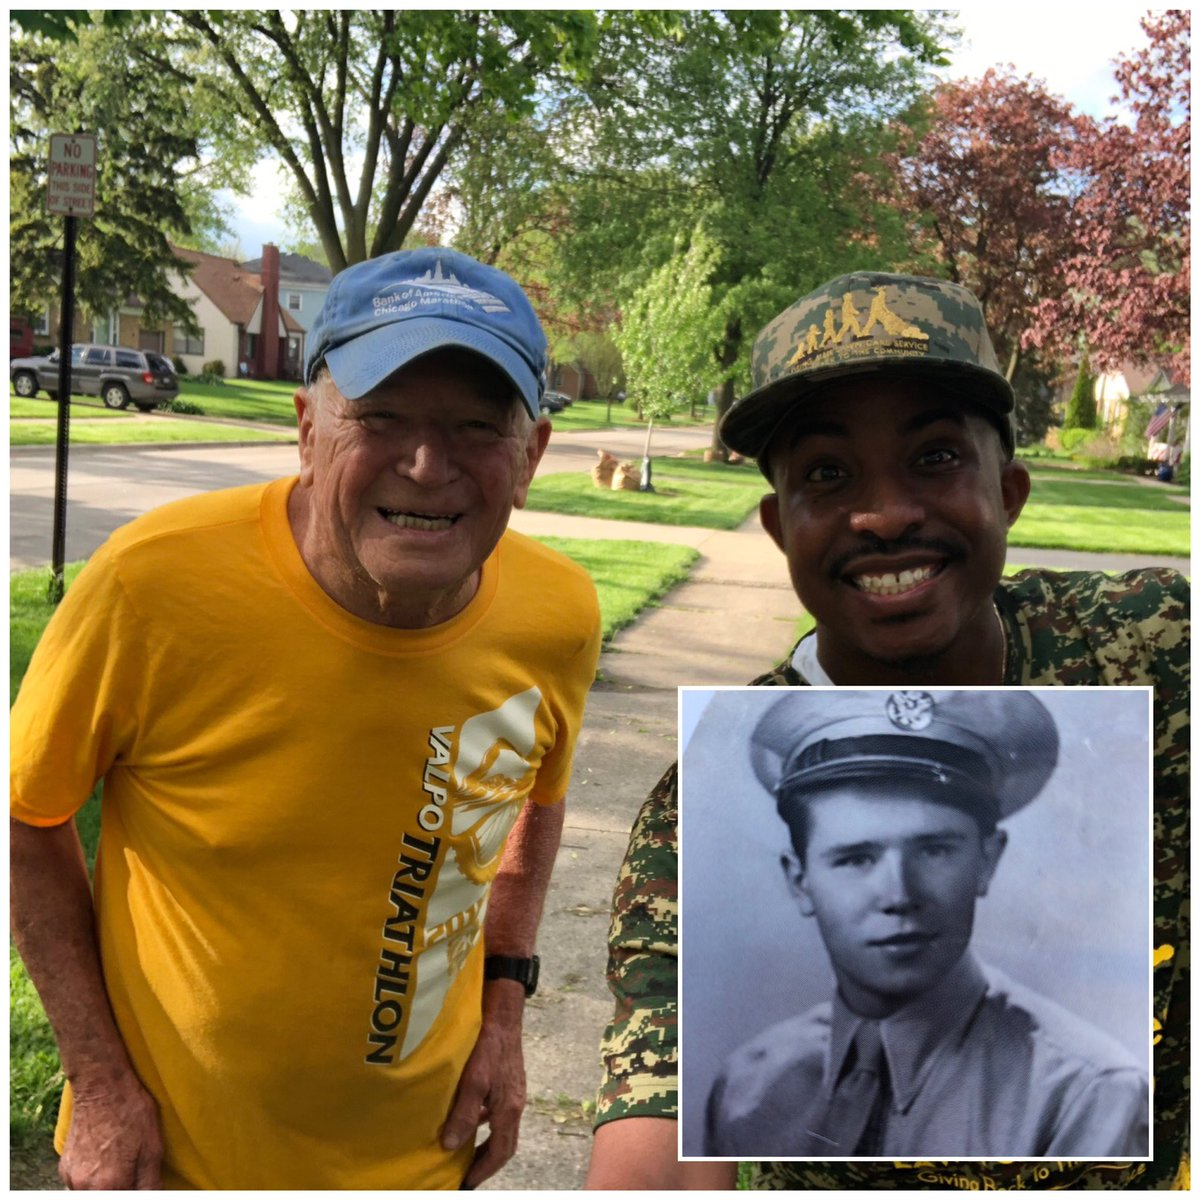 I just had the honor &amp; privilege of mowing for Mr. McKeague in Villa Park,IL. He fought in world war 2. He was drafted at 18 and was a gunner in a tank ! It was such an honor talking to him and learning about his time in WW2. Thank you for your service &amp; sacrifice <br>http://pic.twitter.com/EbNSNfAGrl